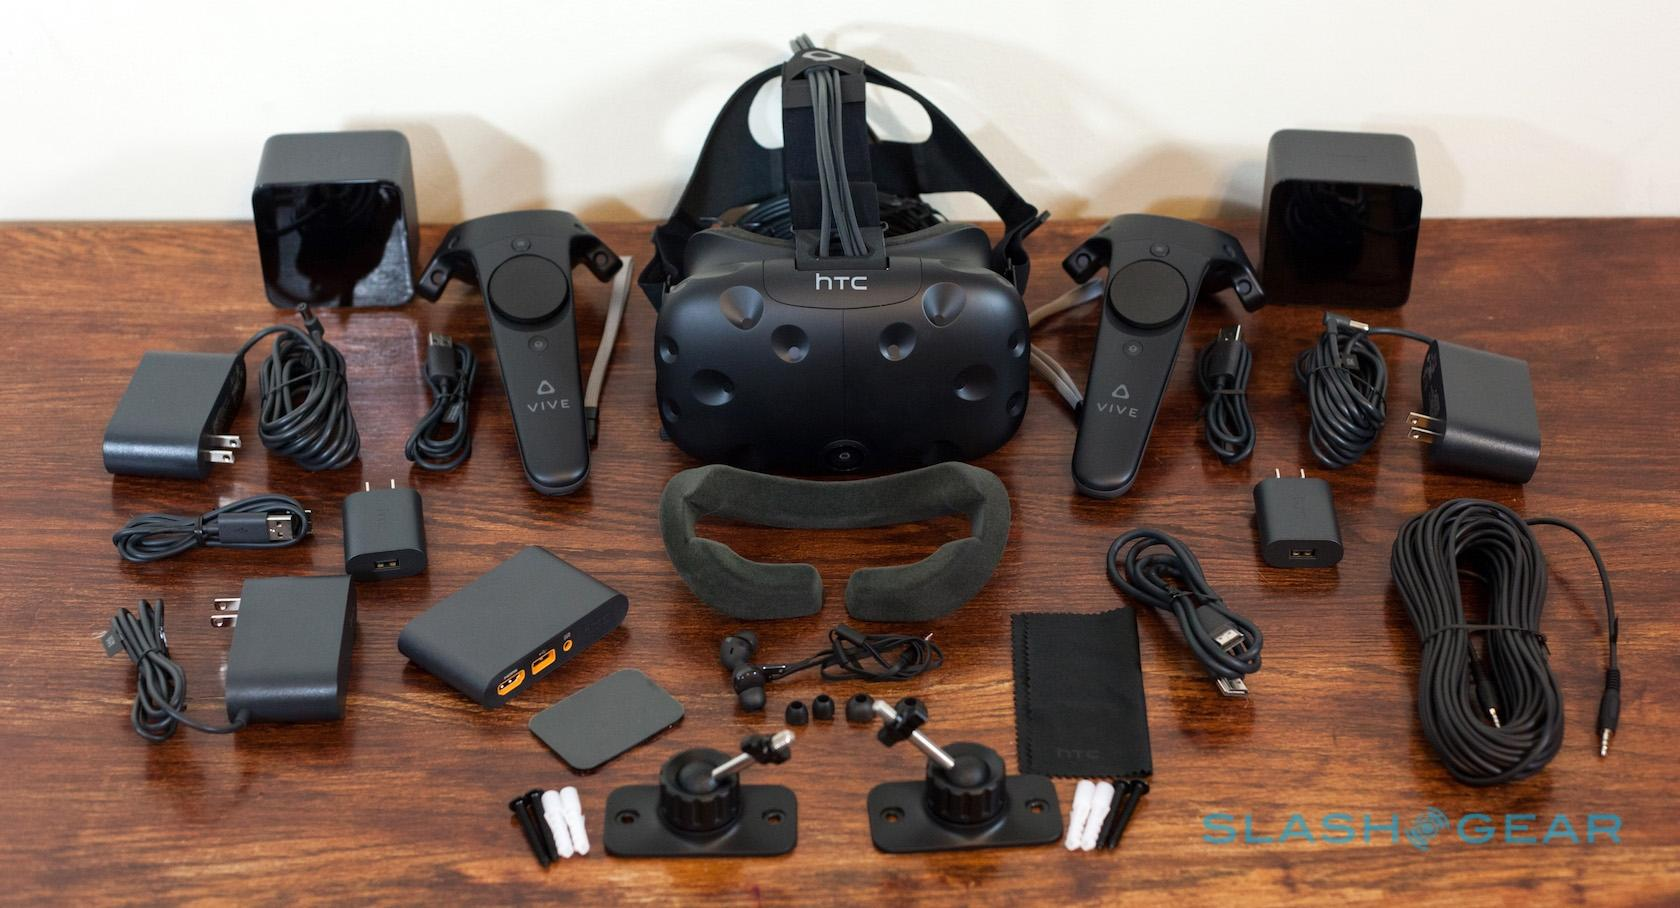 htc-vive-whats-in-the-box-0